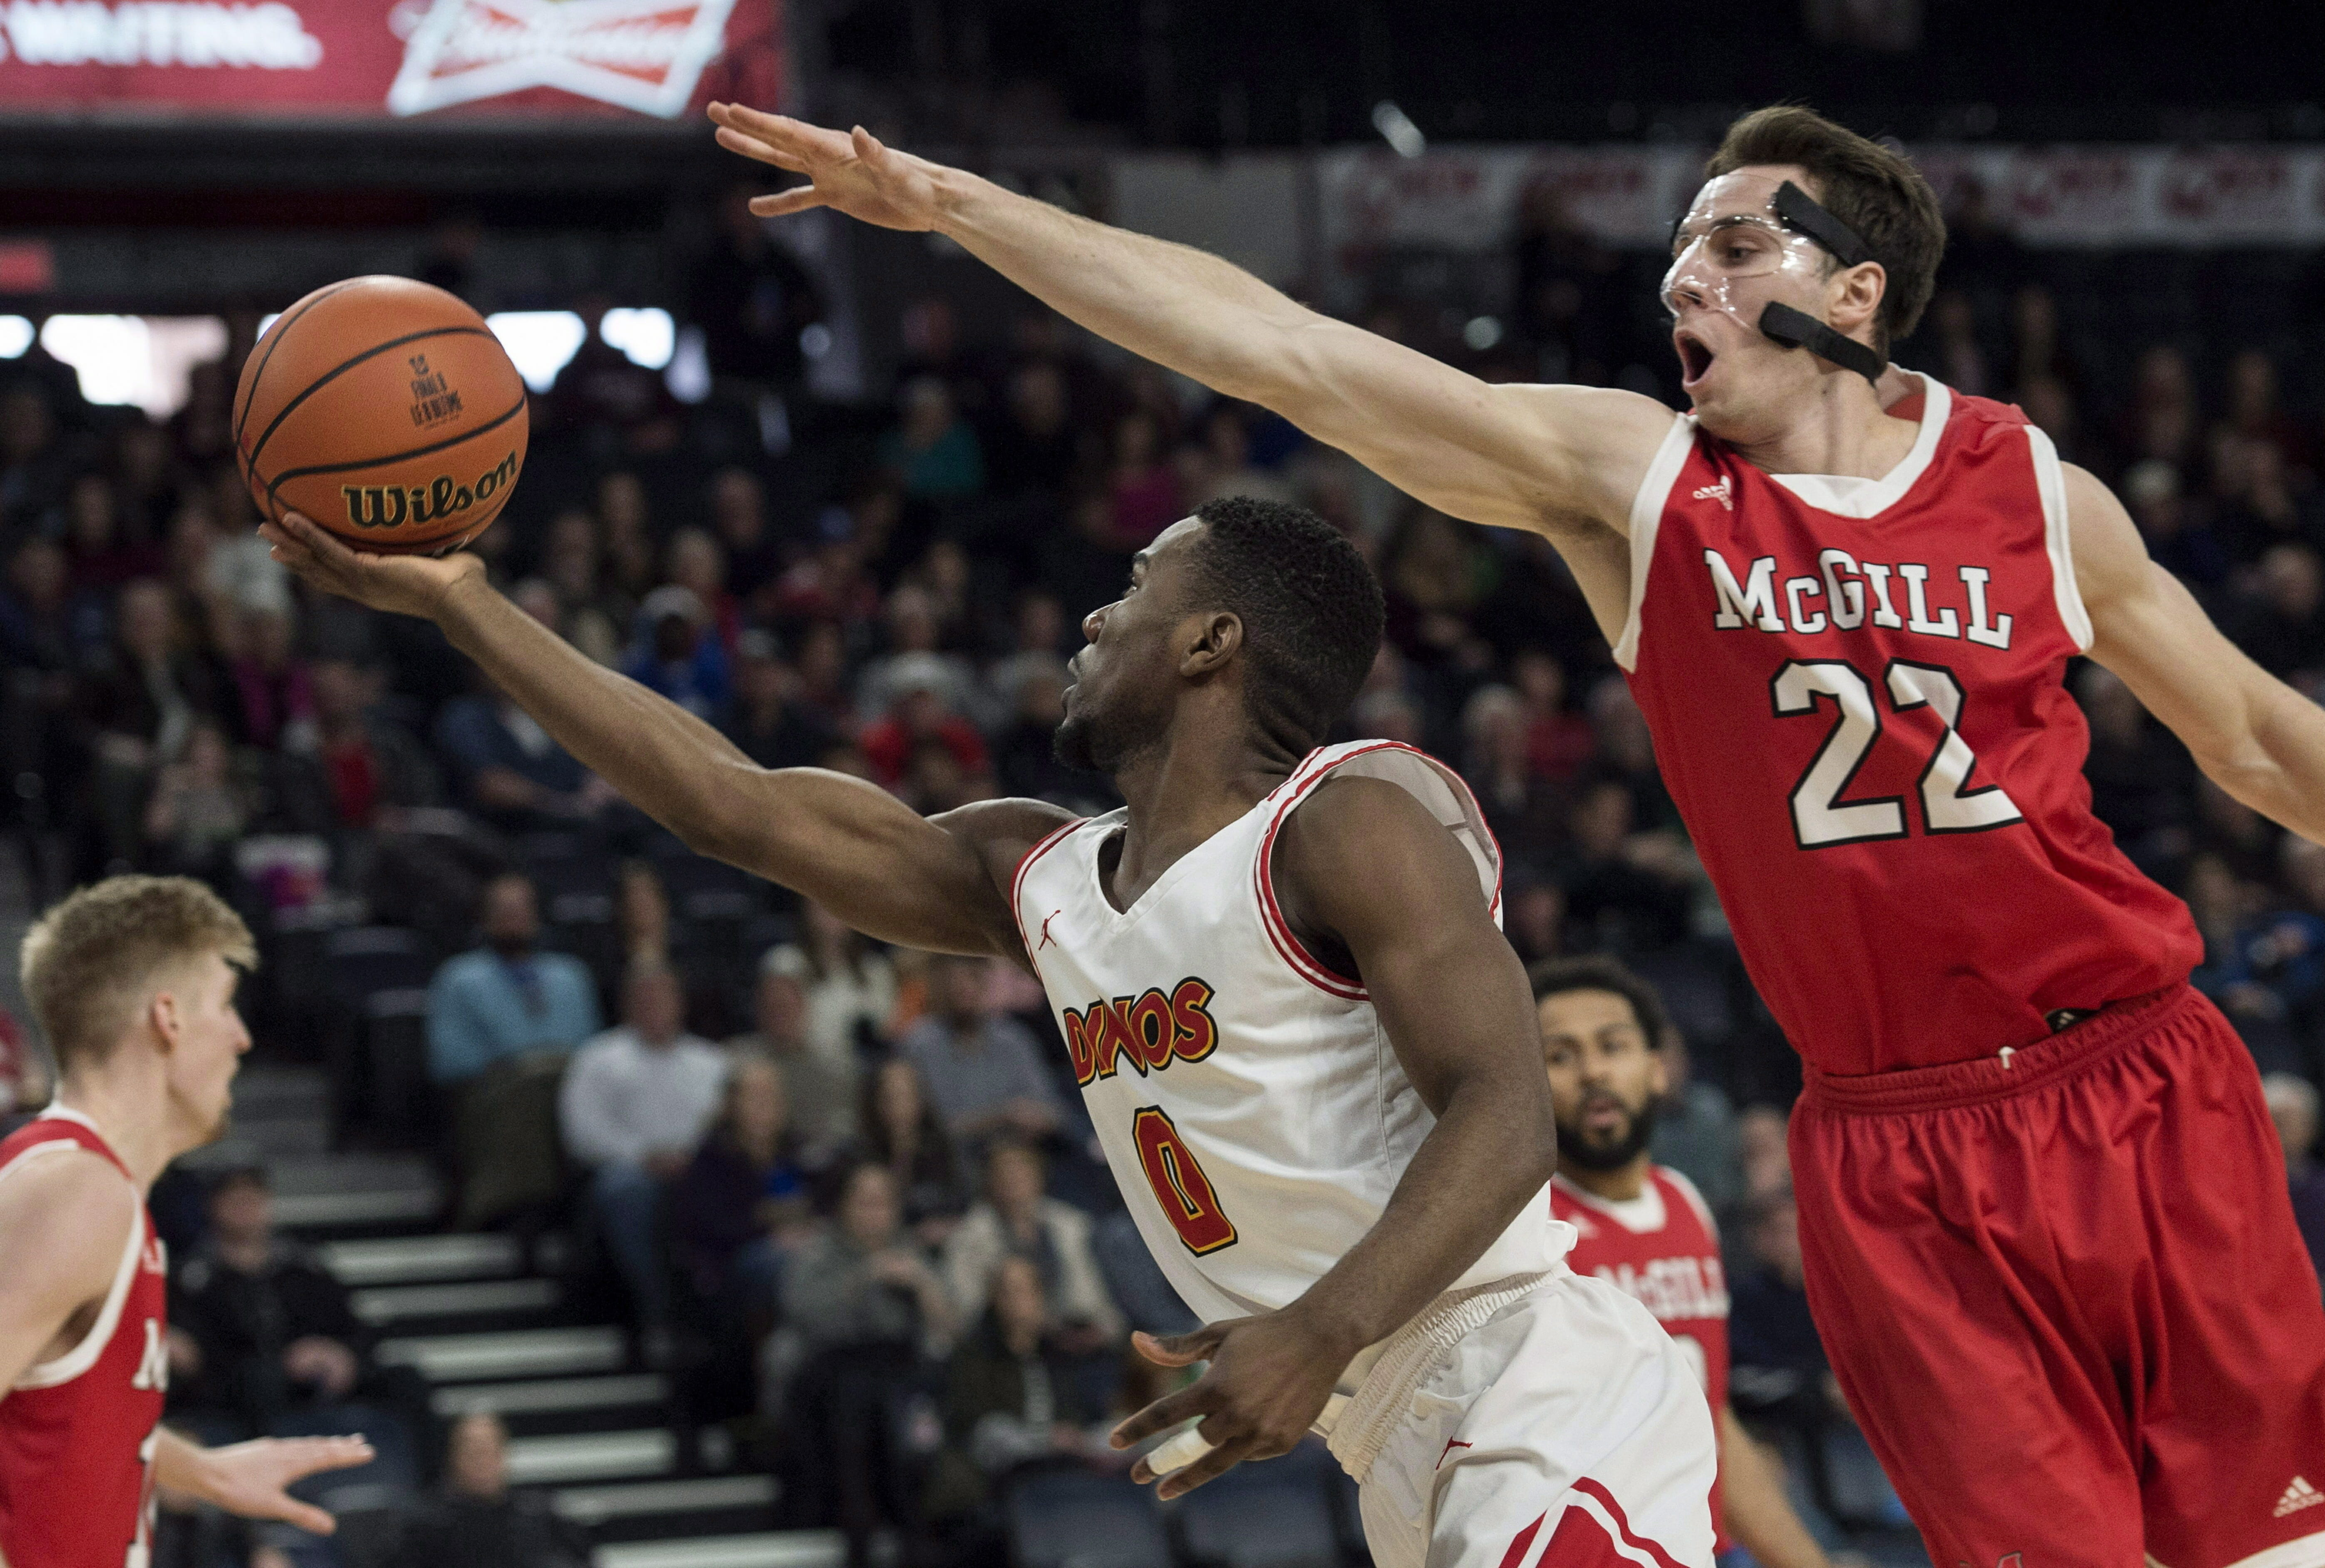 In this March 10, 2018 photo, Calgary's David Kapinga, left, shoots as McGill's Francois Bourque defends during the first half of in the semifinals of the men's basketball national championship in Halifax, Nova Scotia.